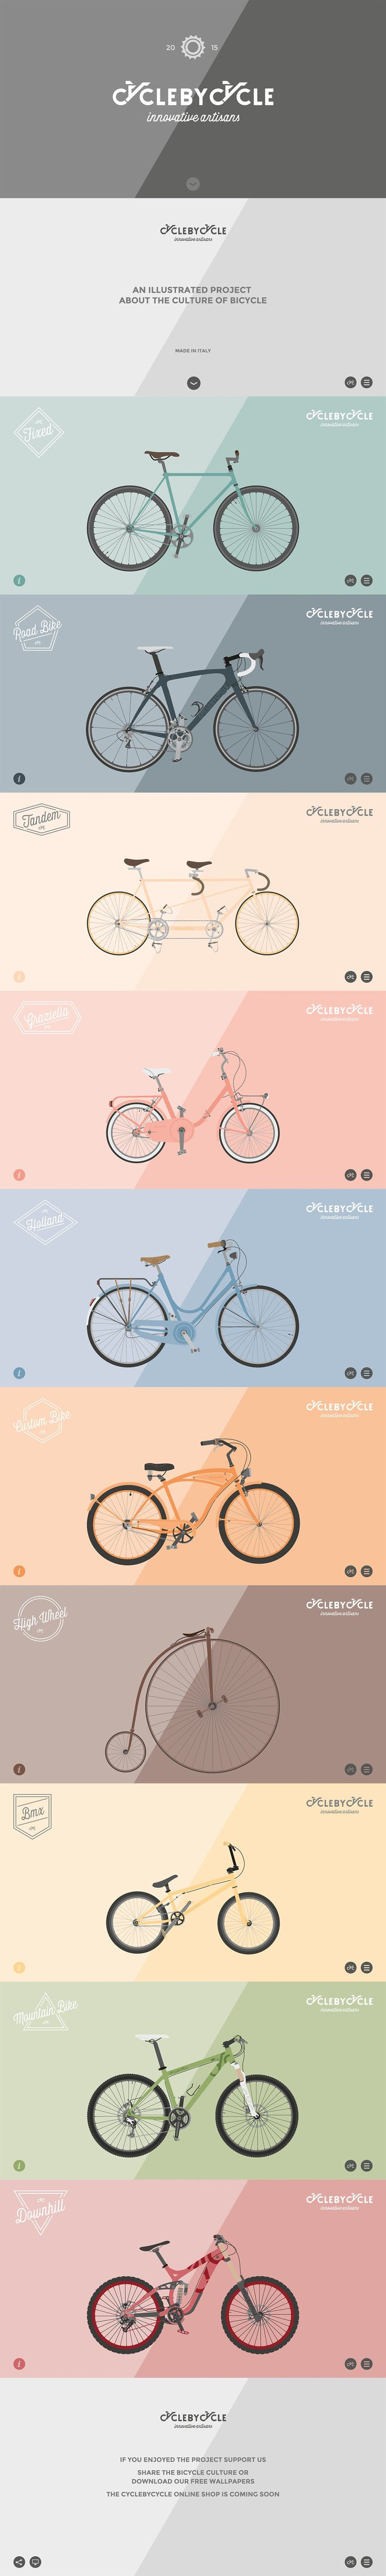 CycleByCycle. What's your favorite? (More design inspiration at www.aldenchong.com)